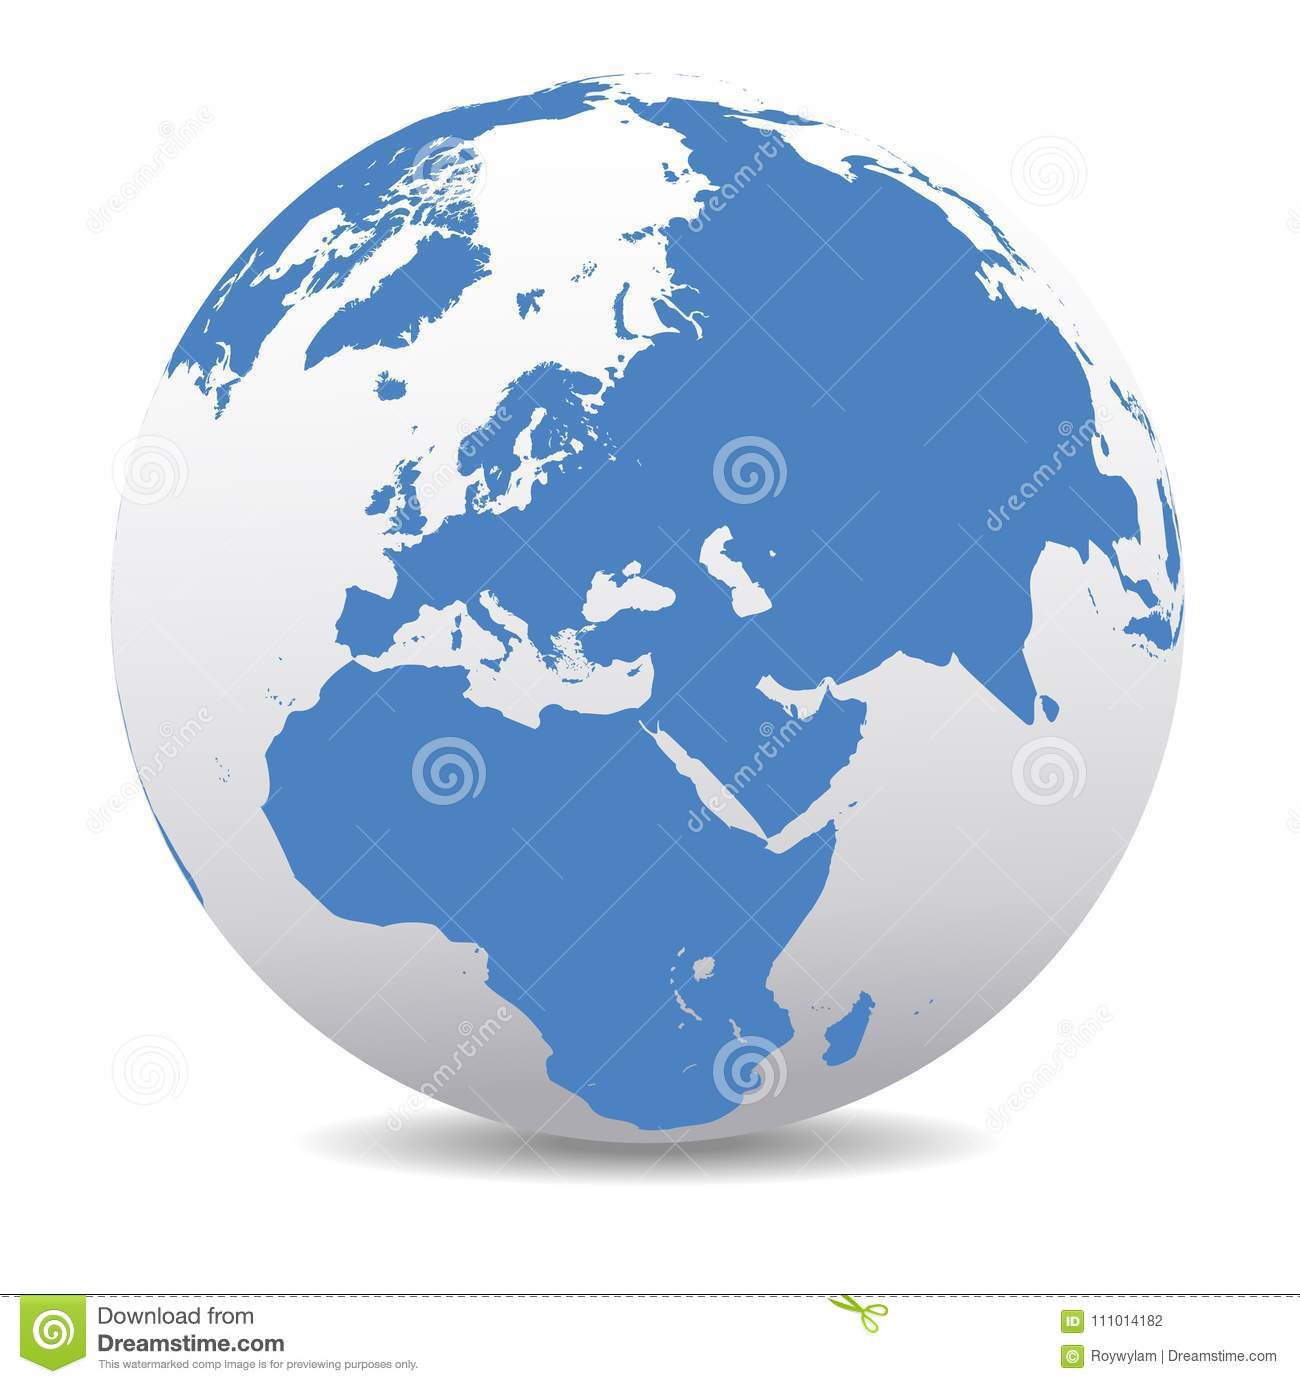 Picture of: Middle East Russia Europe And Africa Global World Stock Vector Illustration Of Kenya East 111014182